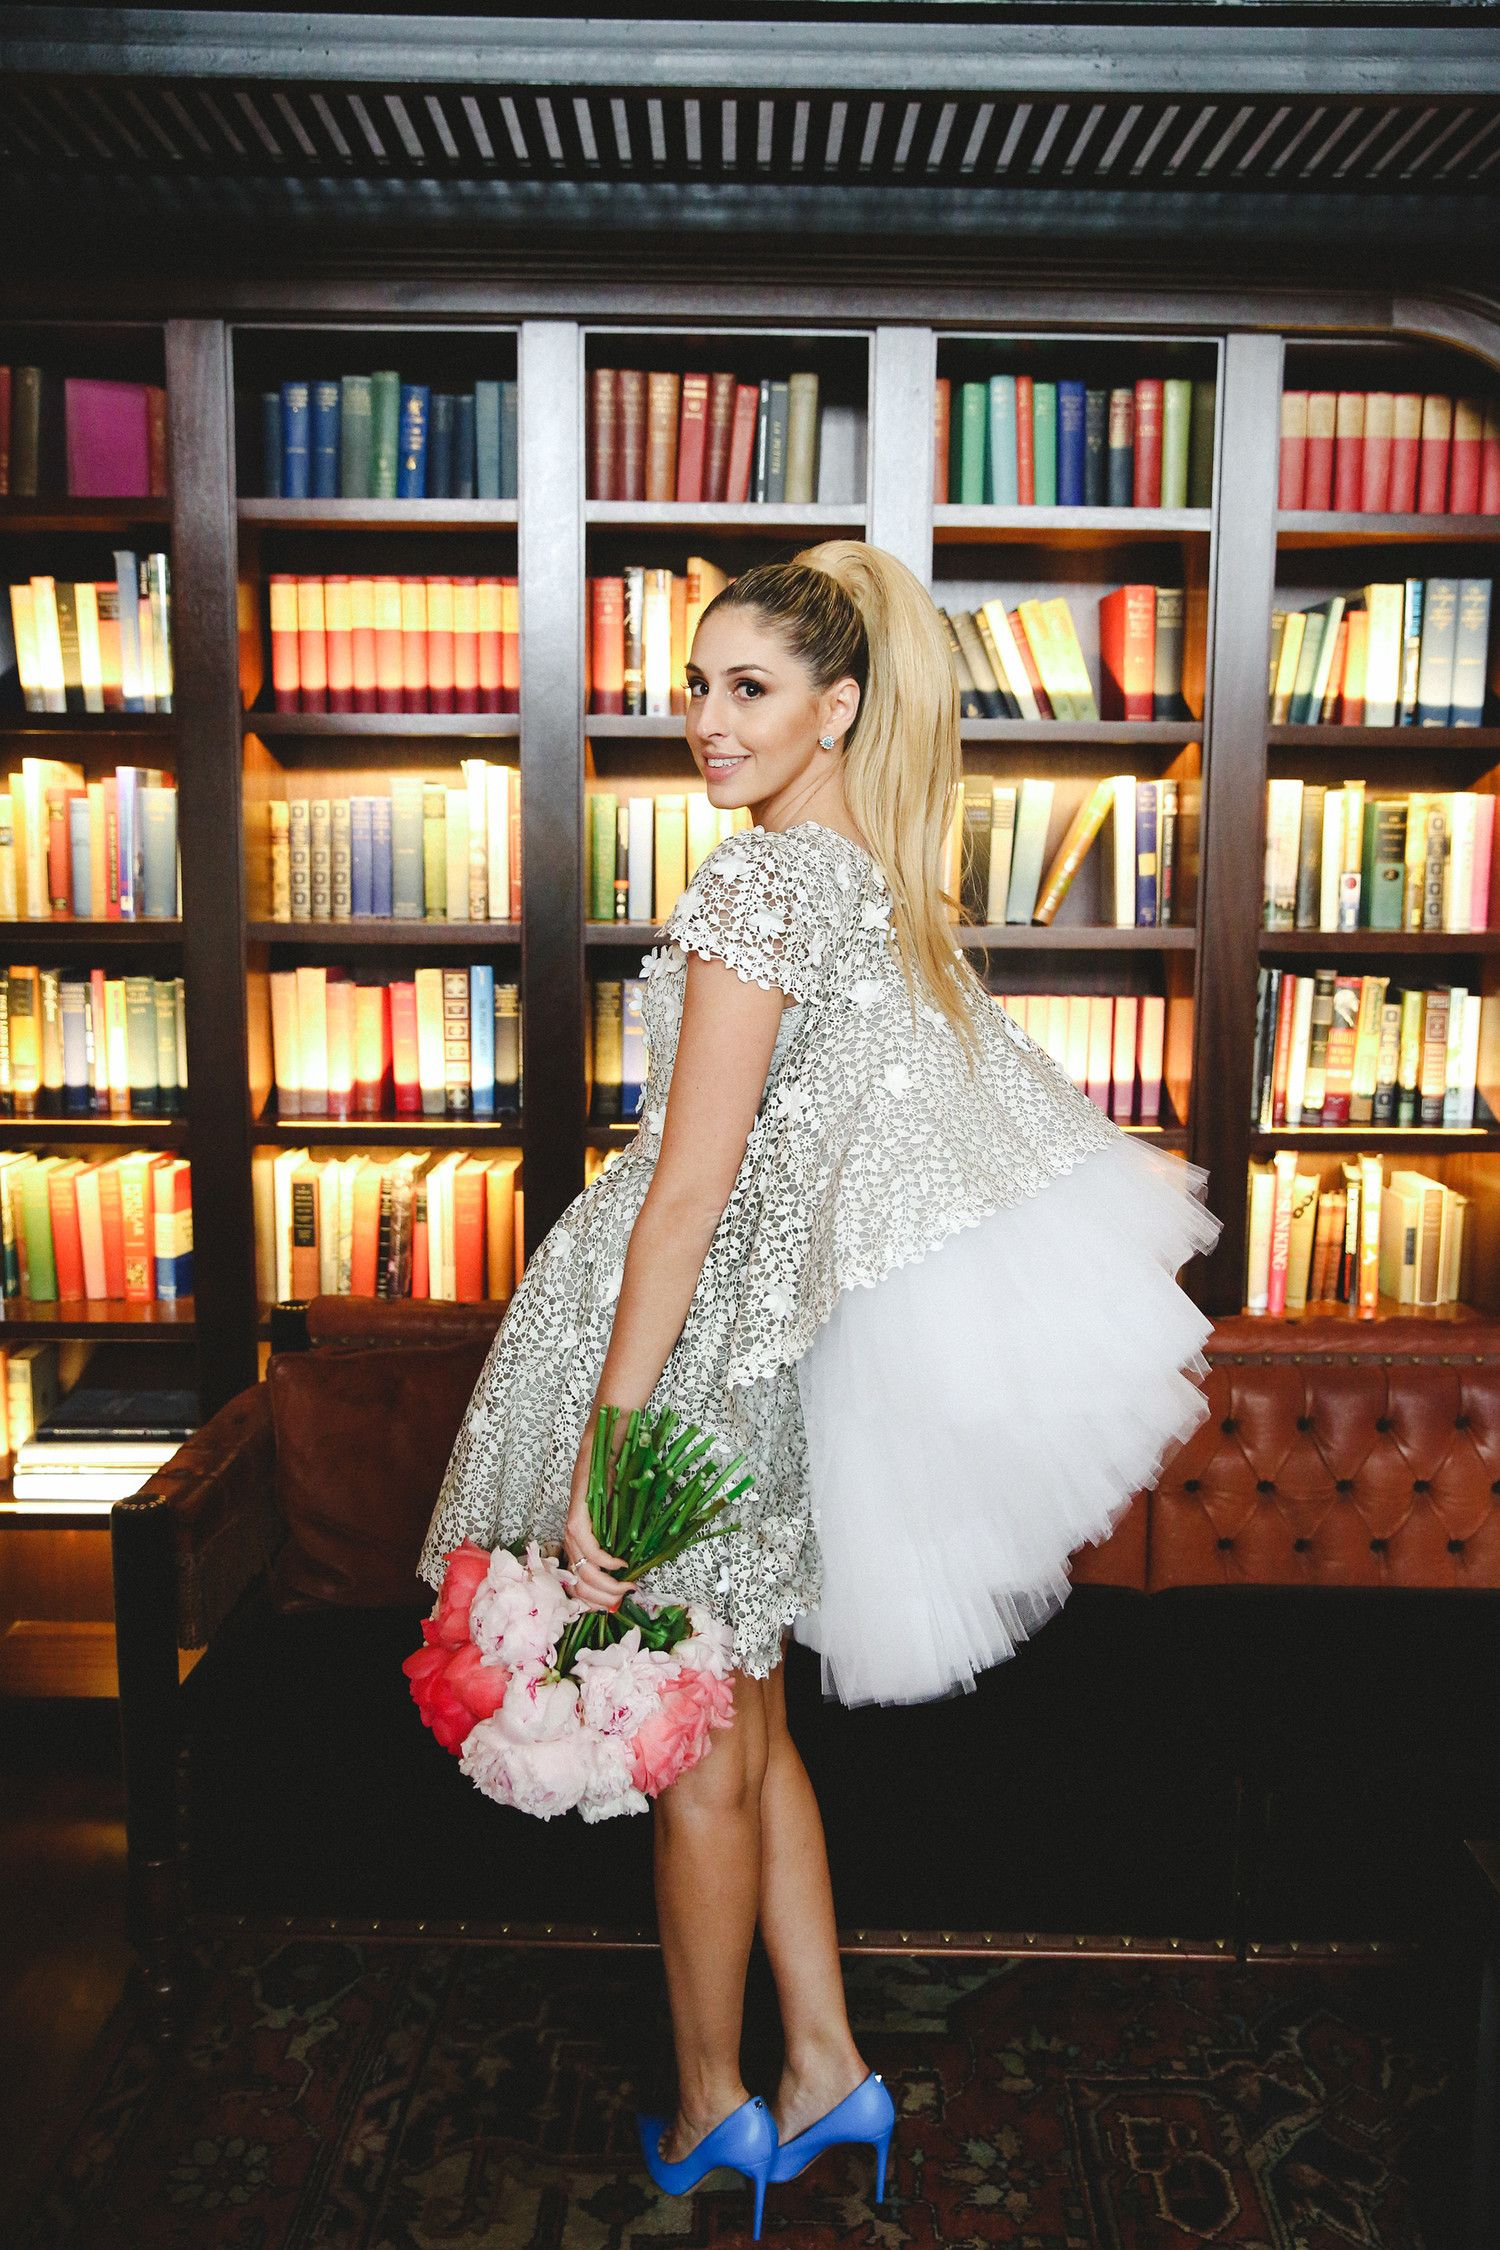 392b9f247e38 Maria Mendez and Patrícia Viera teamed up to create this wow-worthy wedding  dress. Its floral appliqués and a dramatic back definitely turned heads.